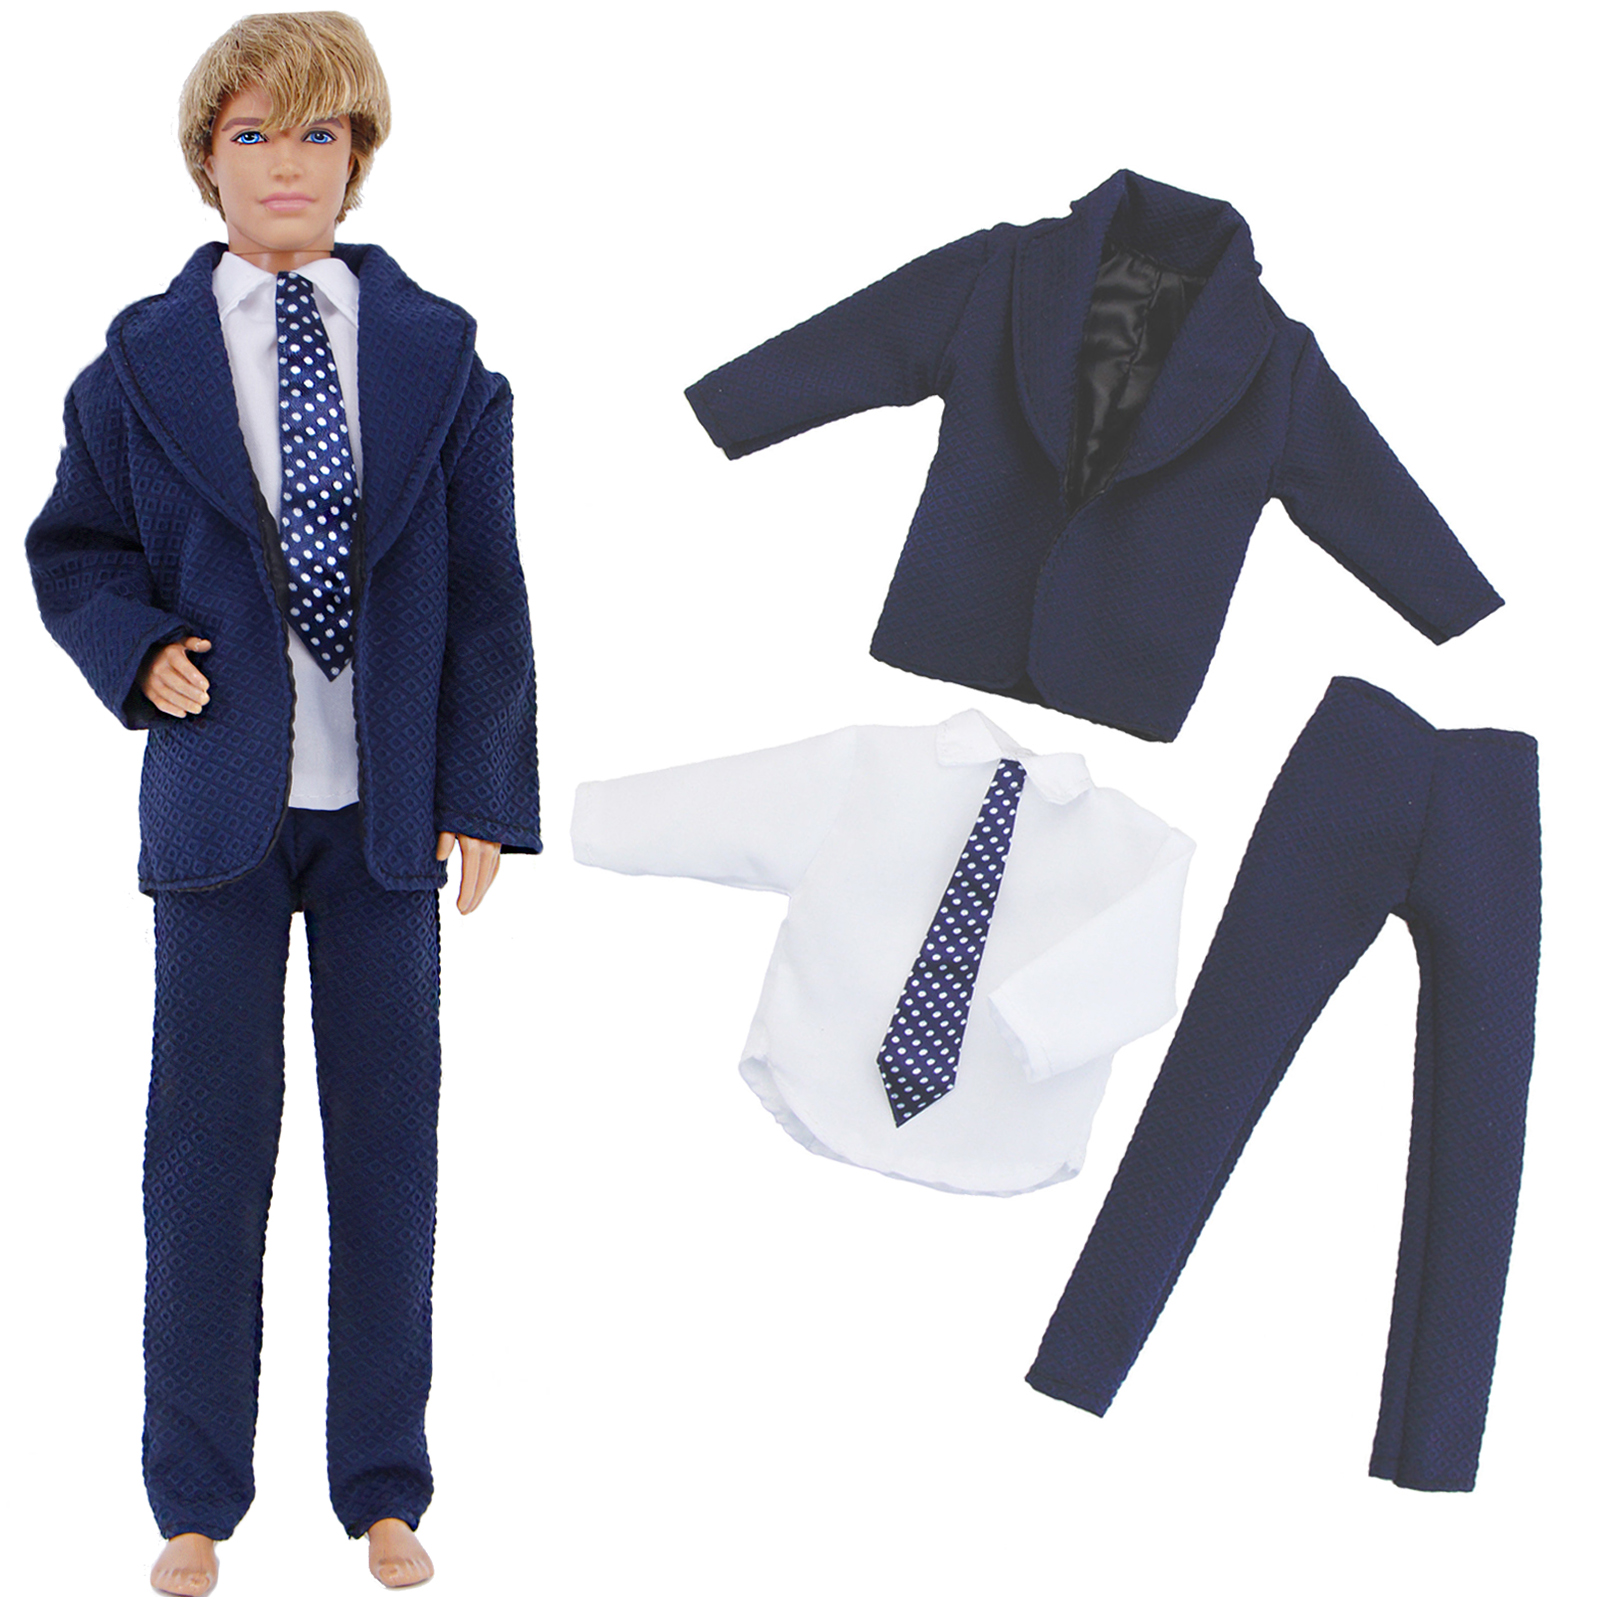 Handmade Dark Blue Outfit Formal Business Suit White Shirt Pants Tuxedo Clothes For Barbie Doll Ken Wedding Accessories Toy